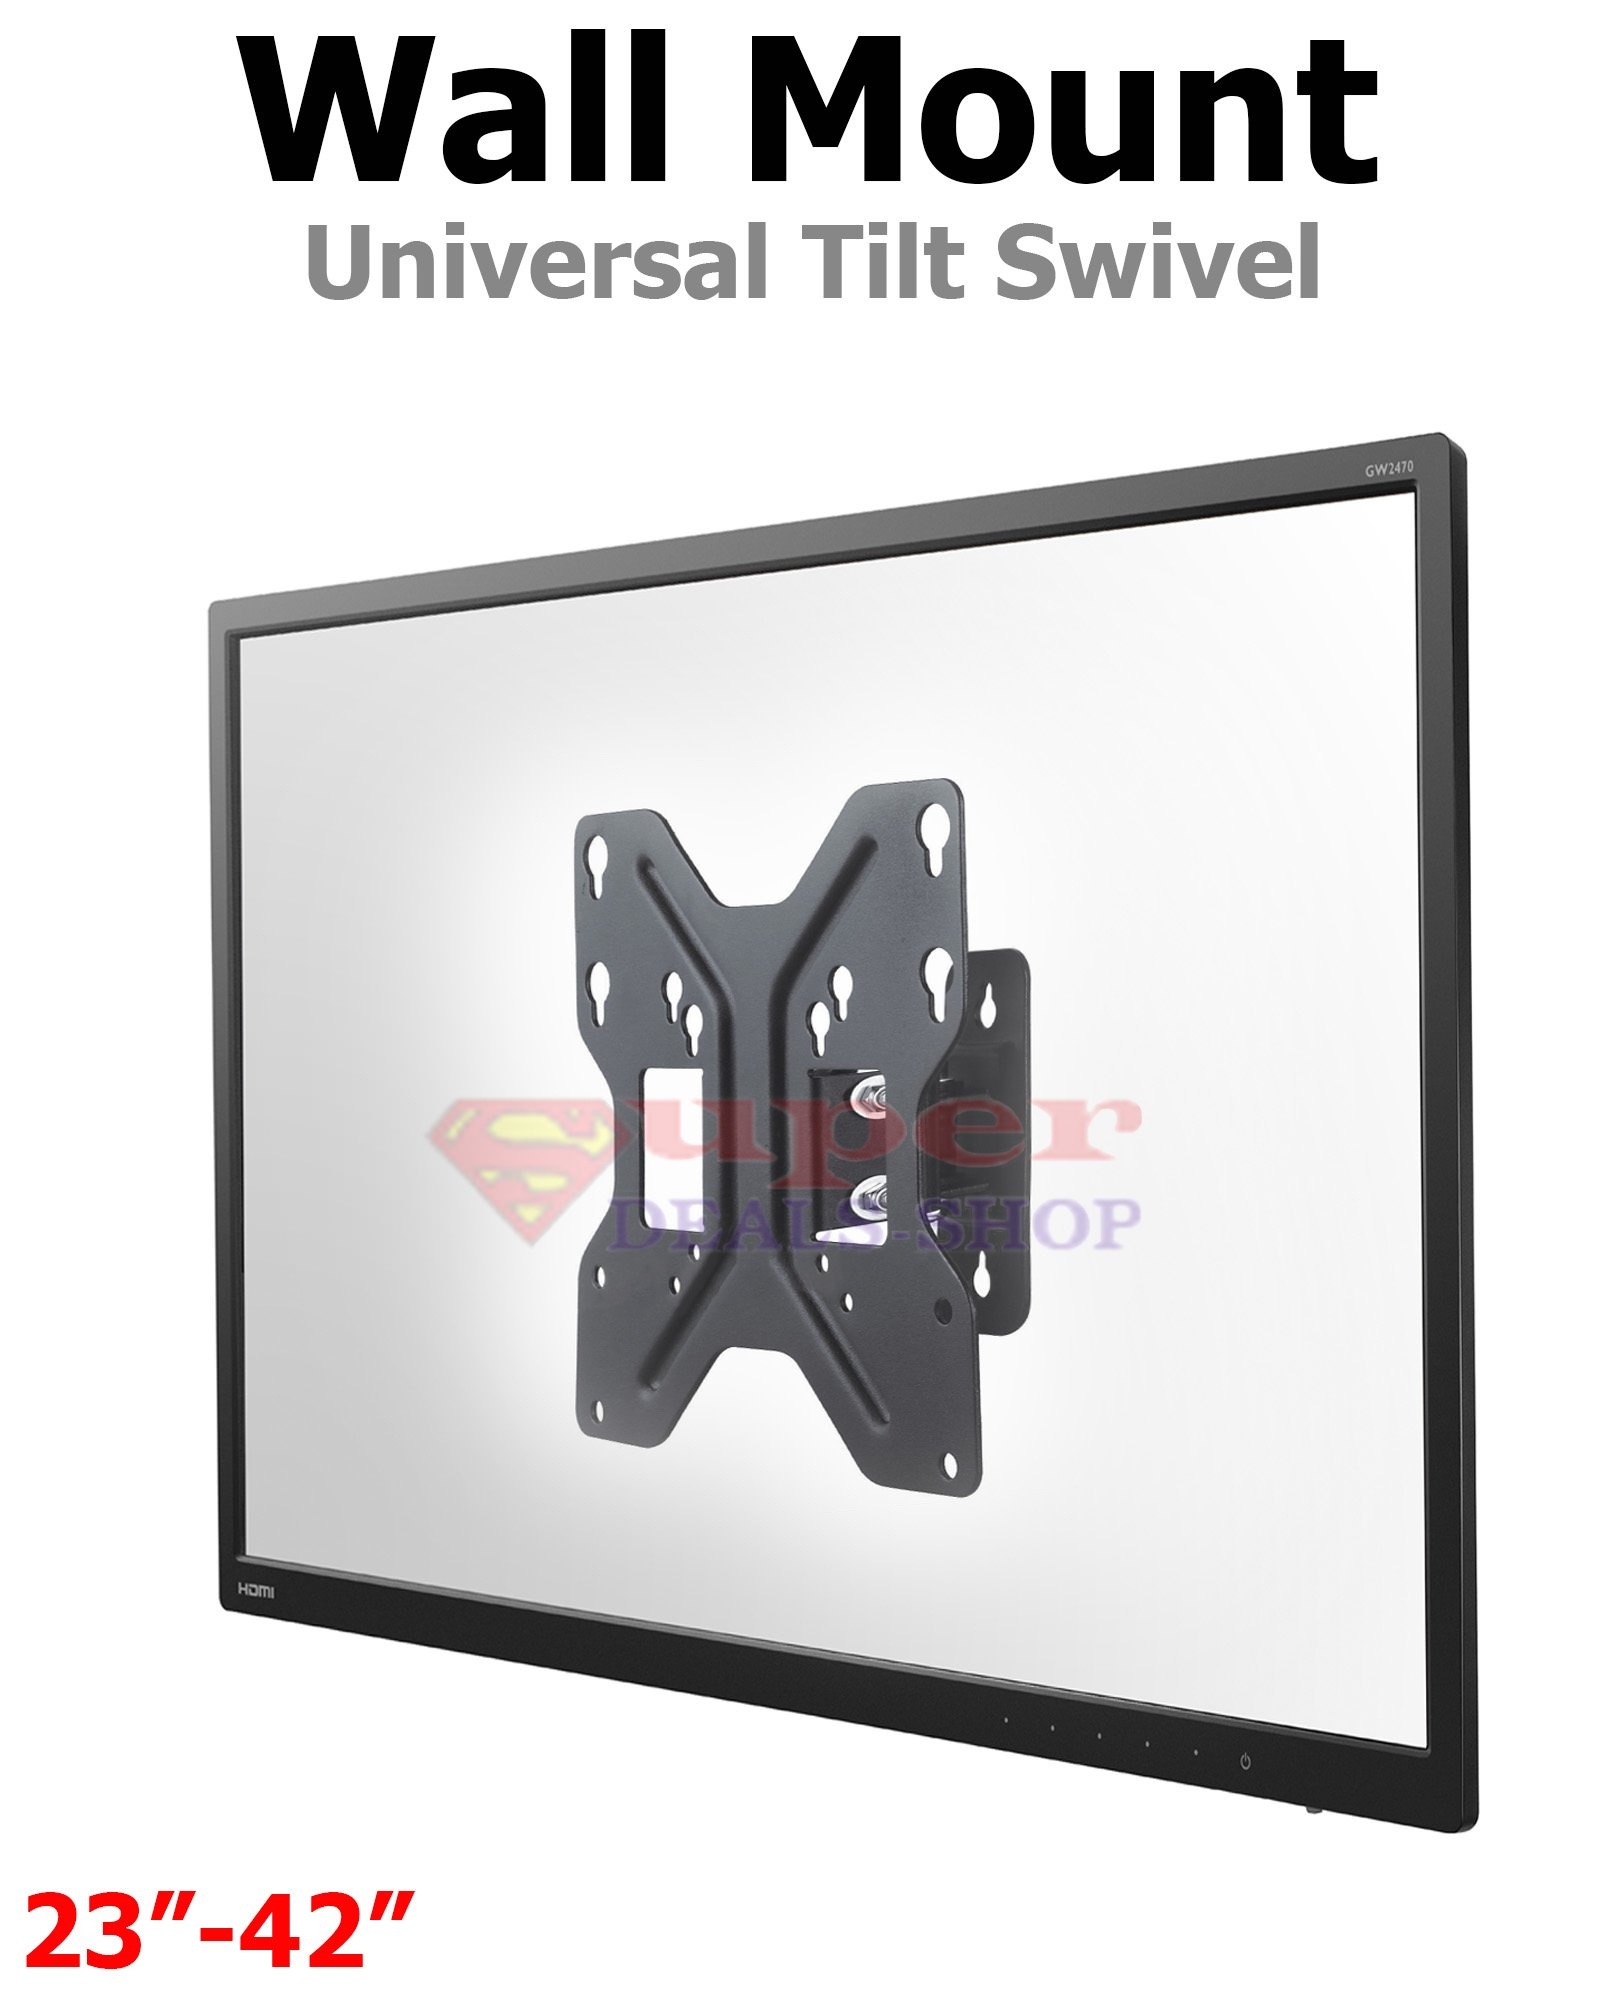 Universal Tilt Swivel TV Wall Mount for most 22'' 24'' 28'' 32'' 39'' 42'' inch Screen LCD OLED 4K VESA: 50x50/75x75/100x100/200x100/200x200 Quick Connect Holes Computer Monitor Steel Super-Deals-Shop